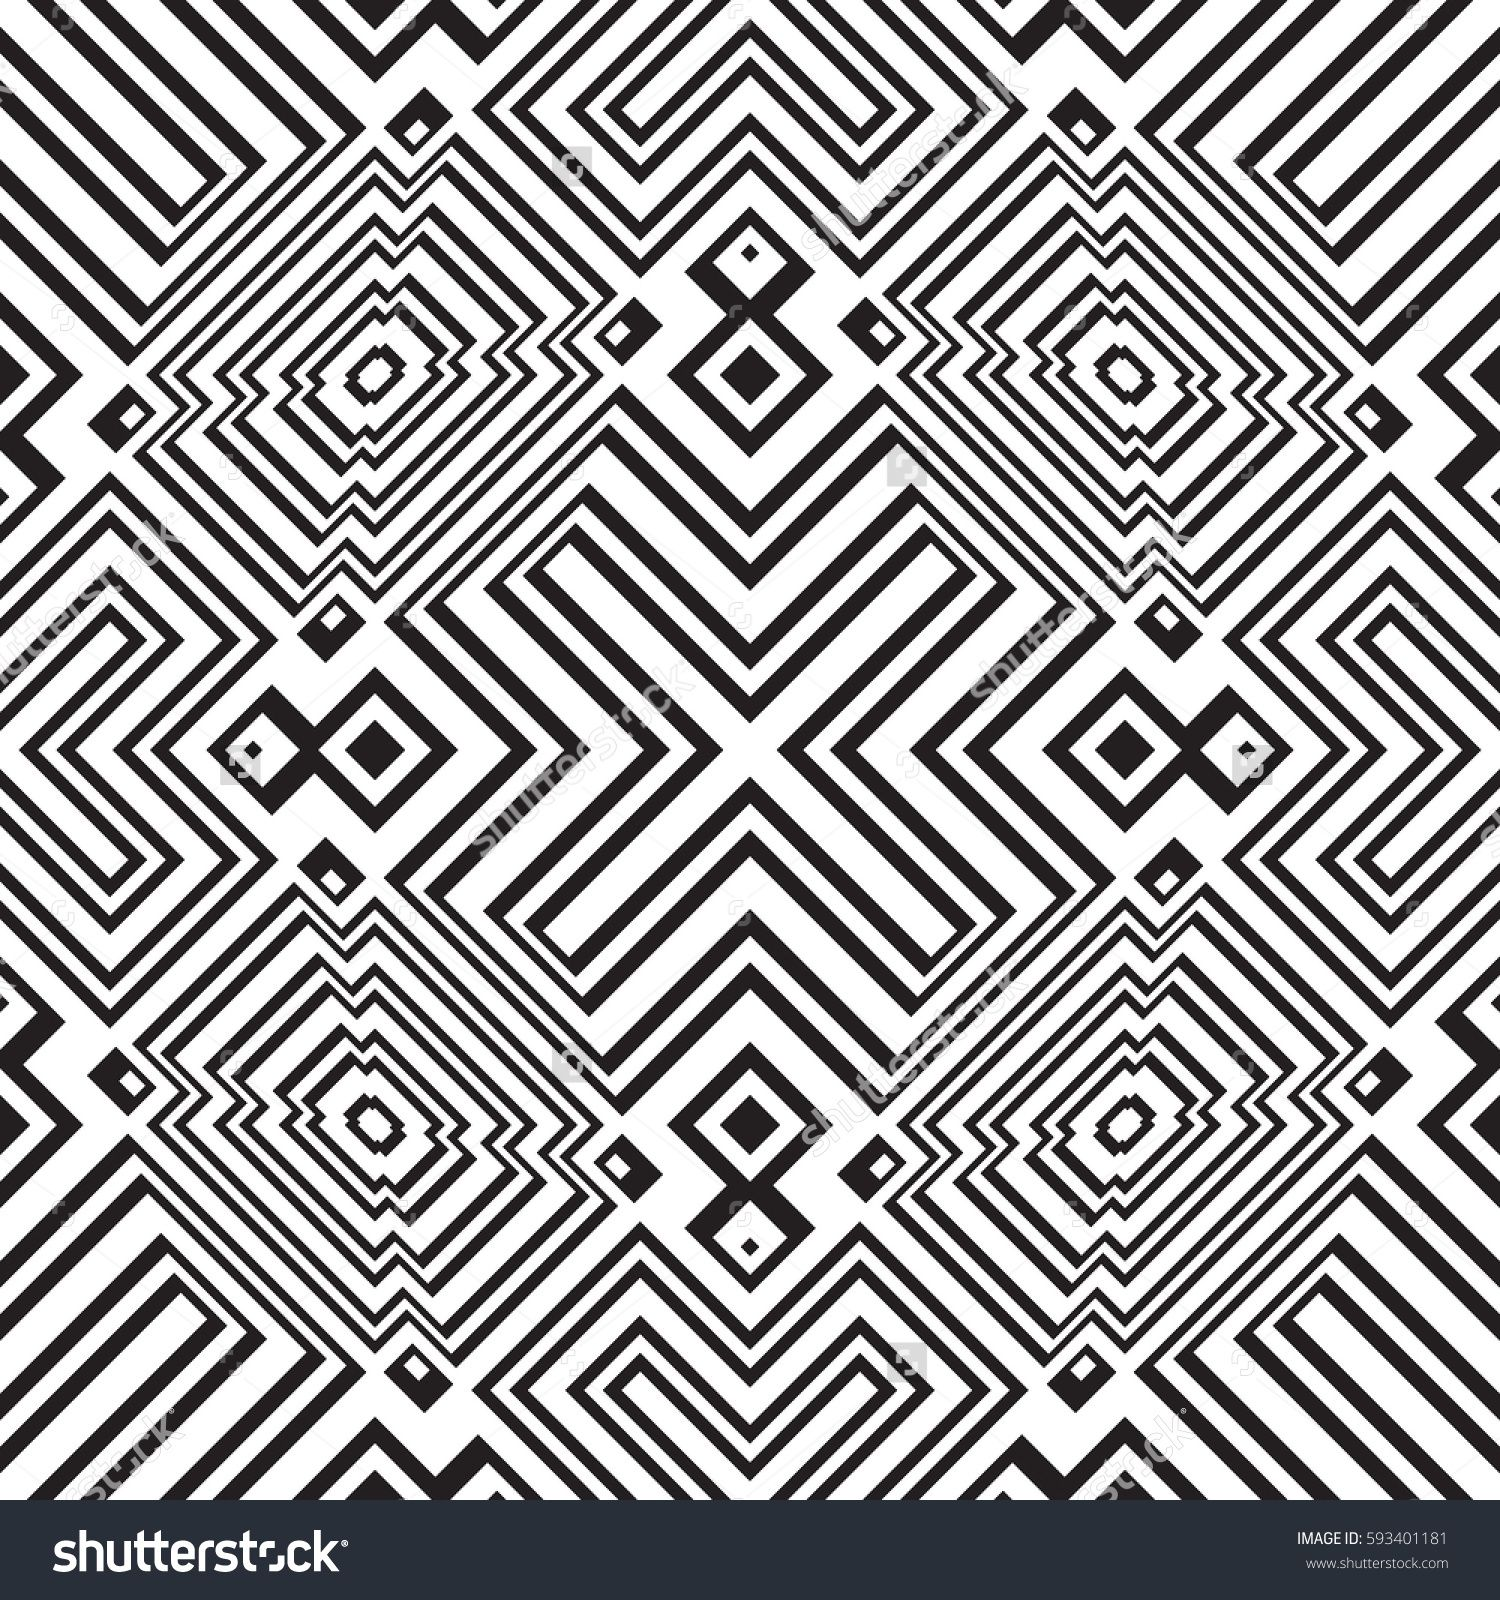 Black And White Geometric Seamless Pattern Simple Regular Background Vector